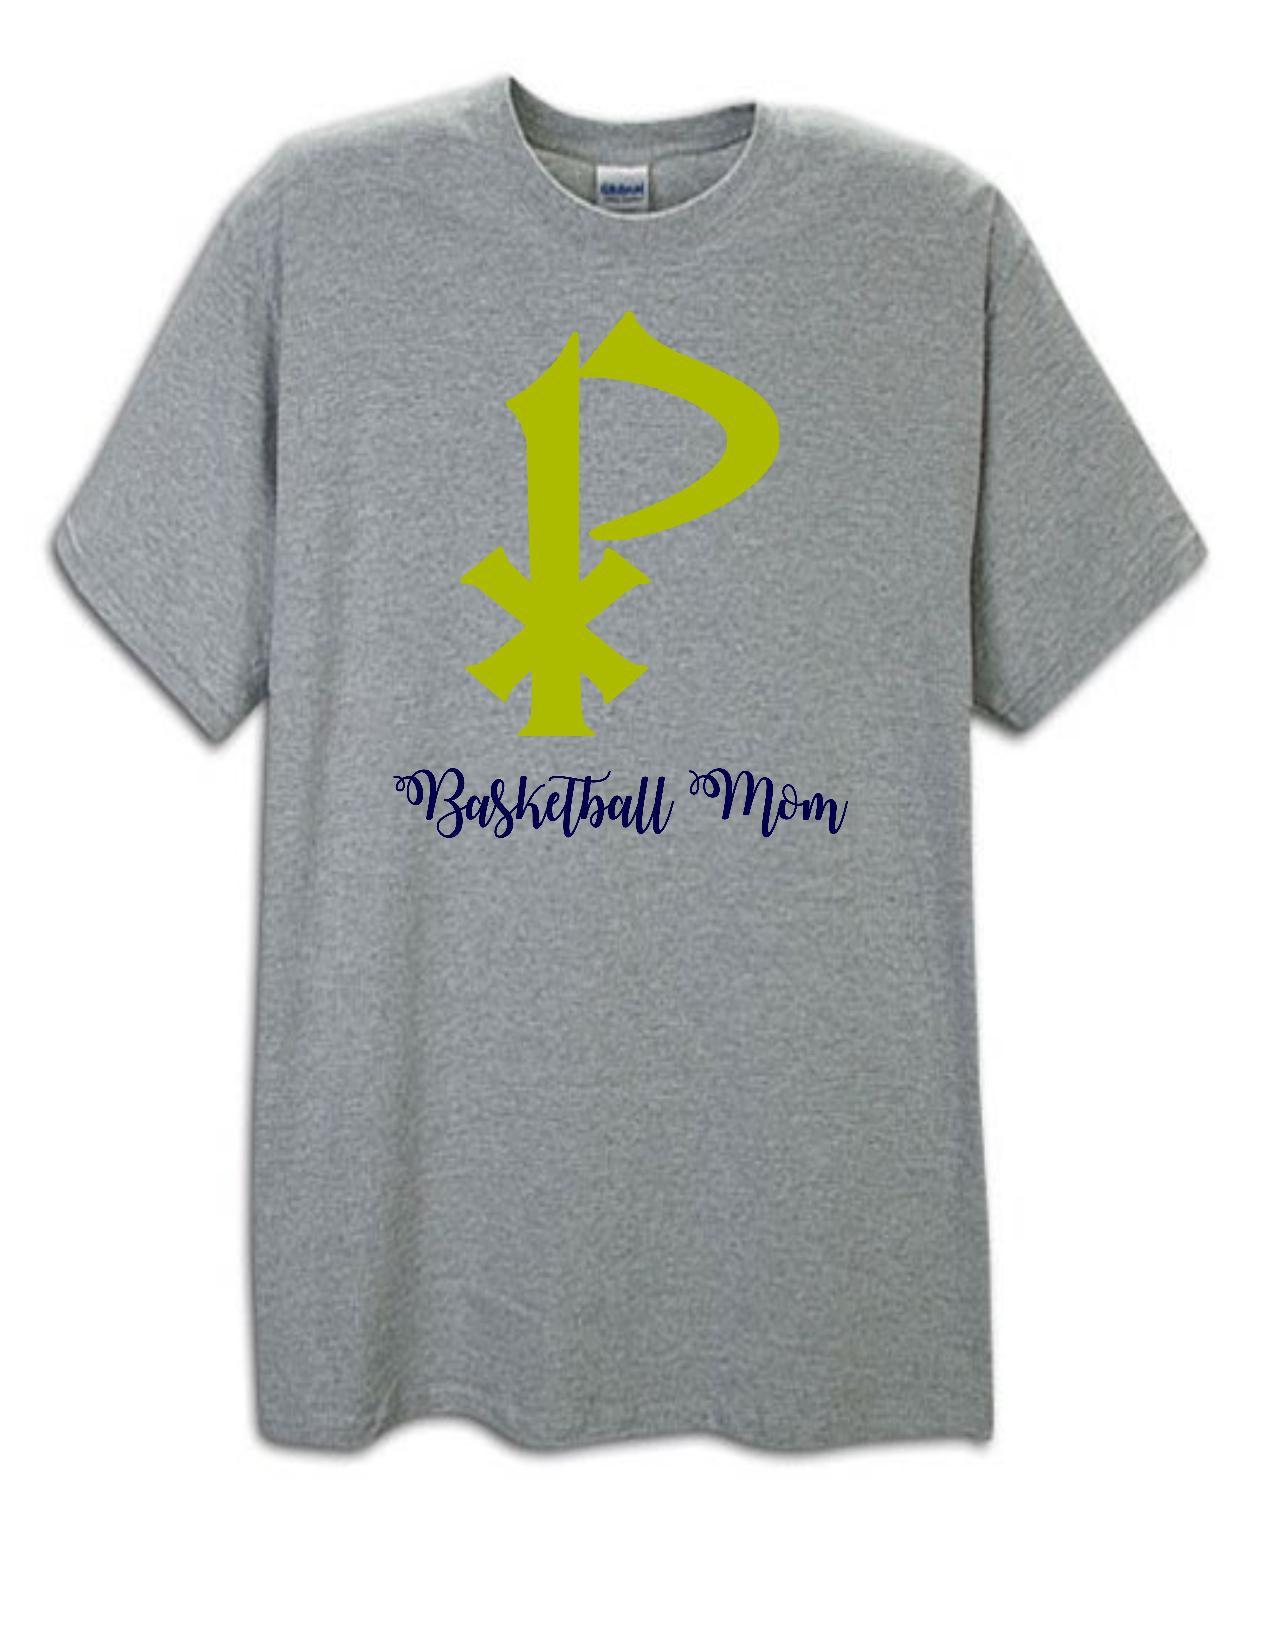 St. Pius X Basketball Mom Tee